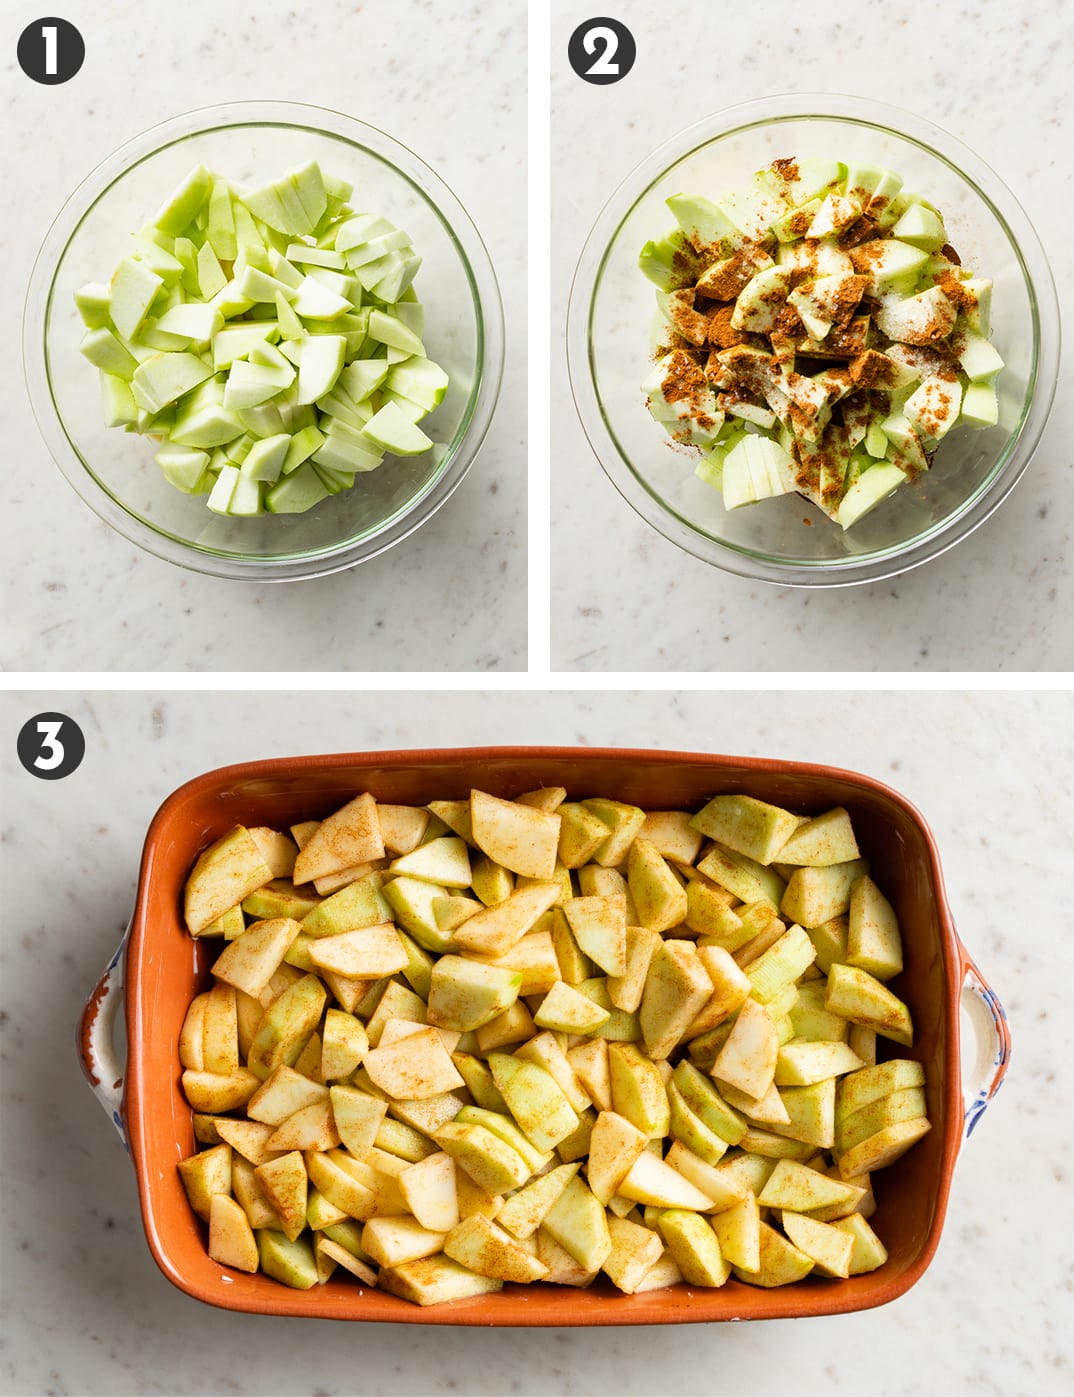 Bowl filled with sliced apples, then tossed with spices and spread in a small rectangular baking dish.